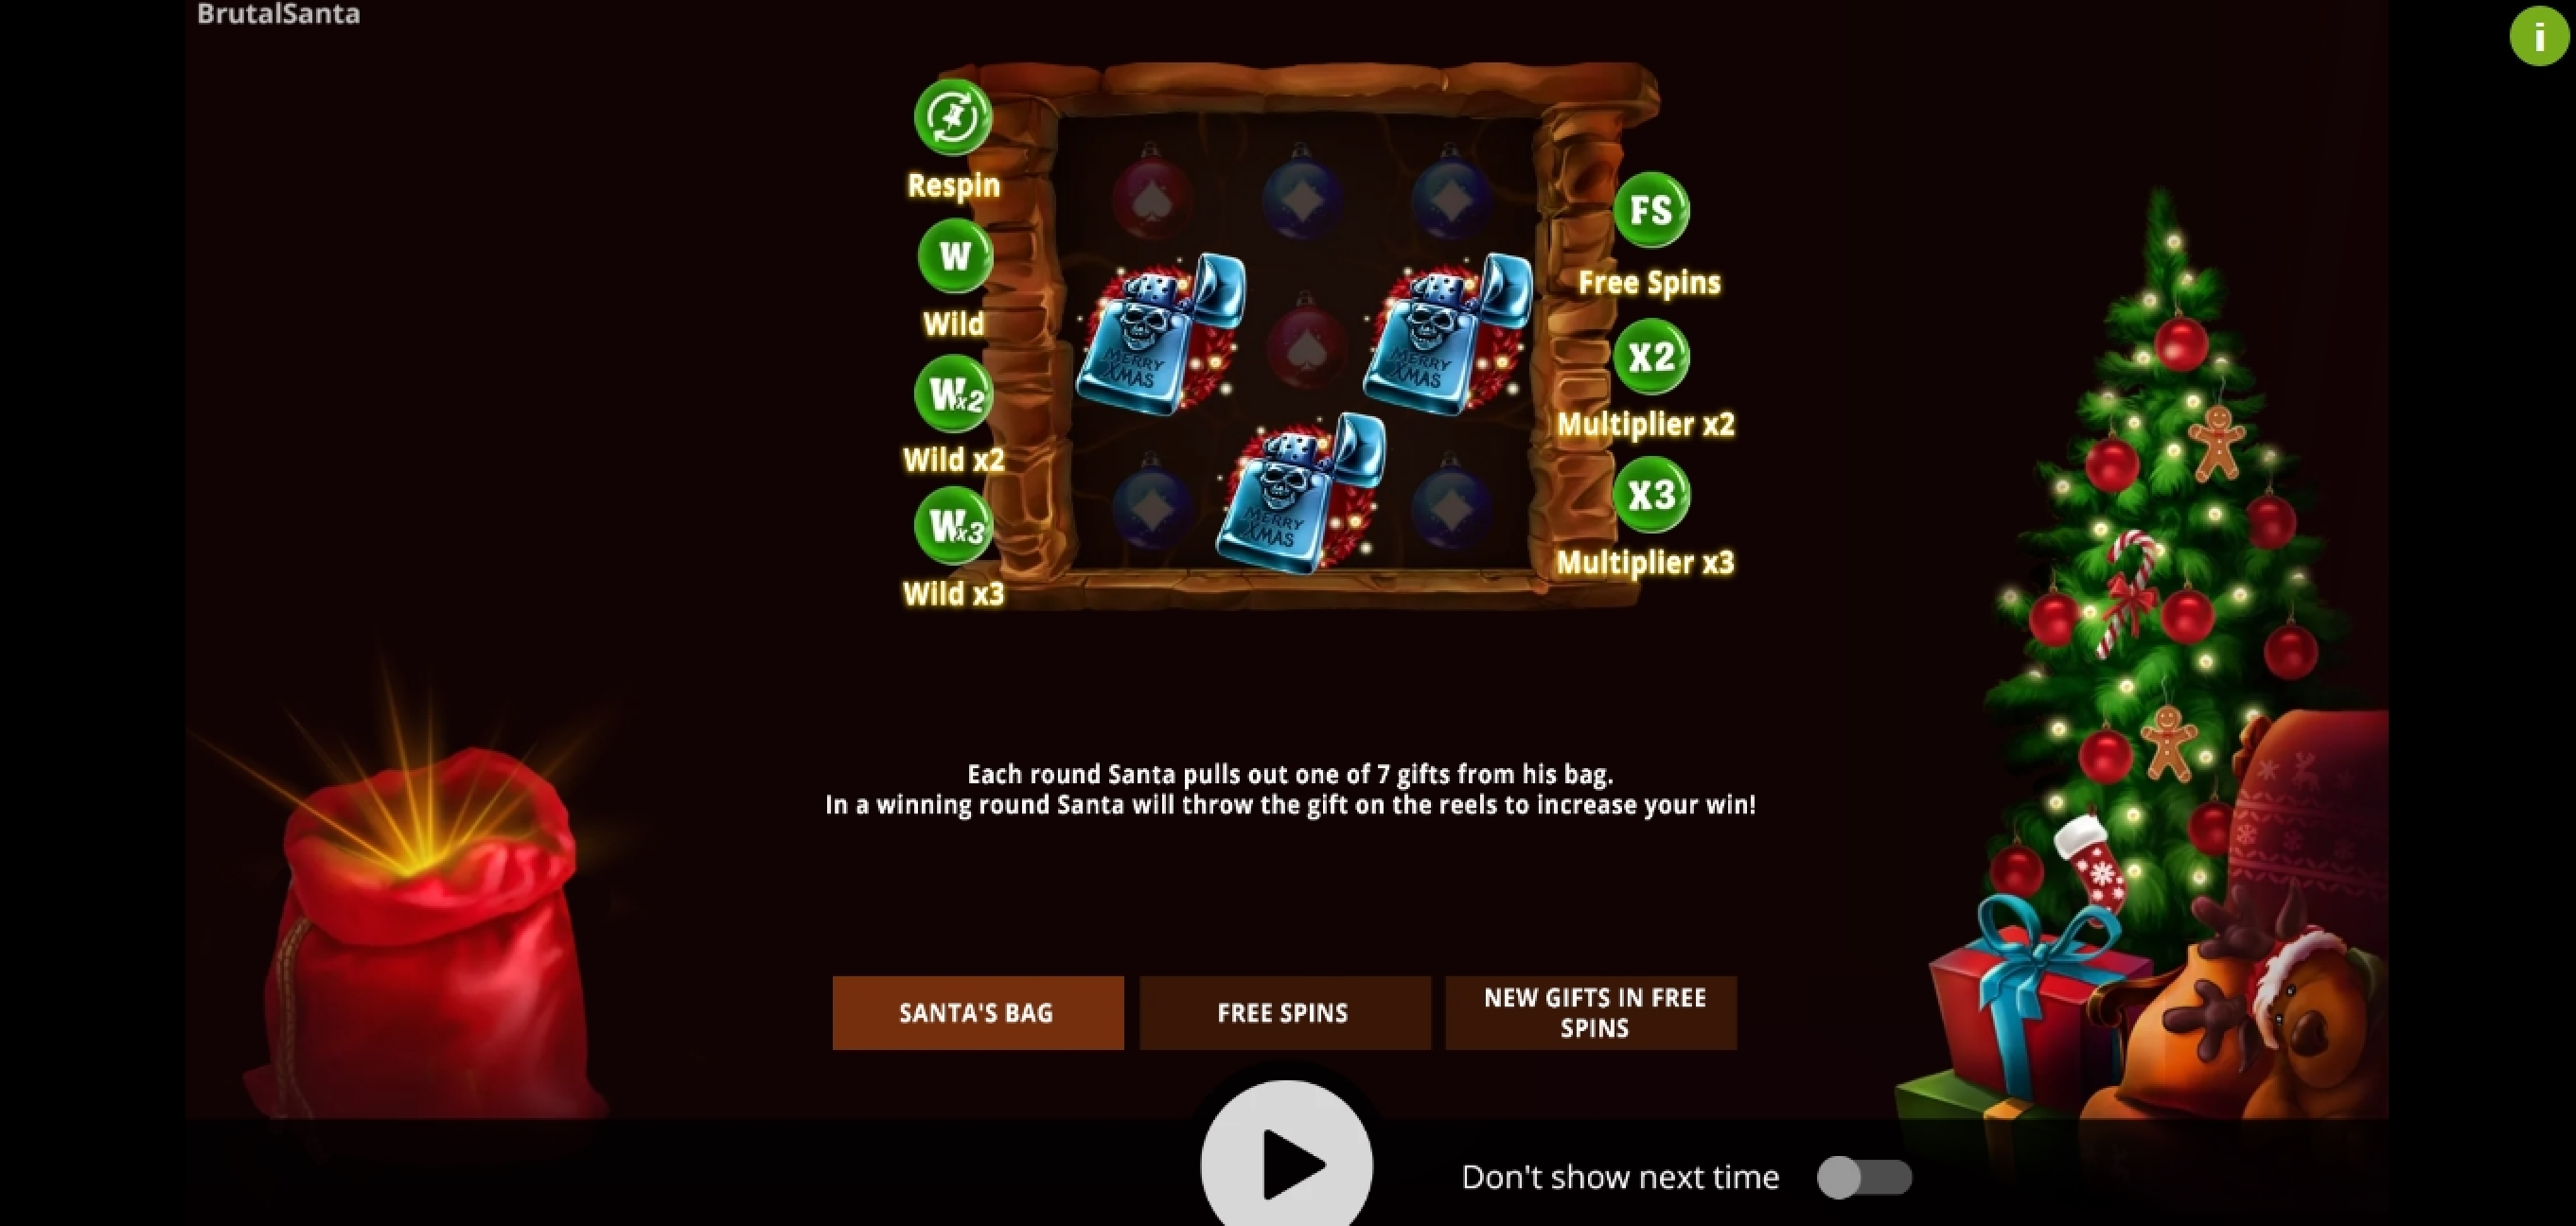 Play Brutal Santa Free Casino Slot Game by Evoplay Entertainment